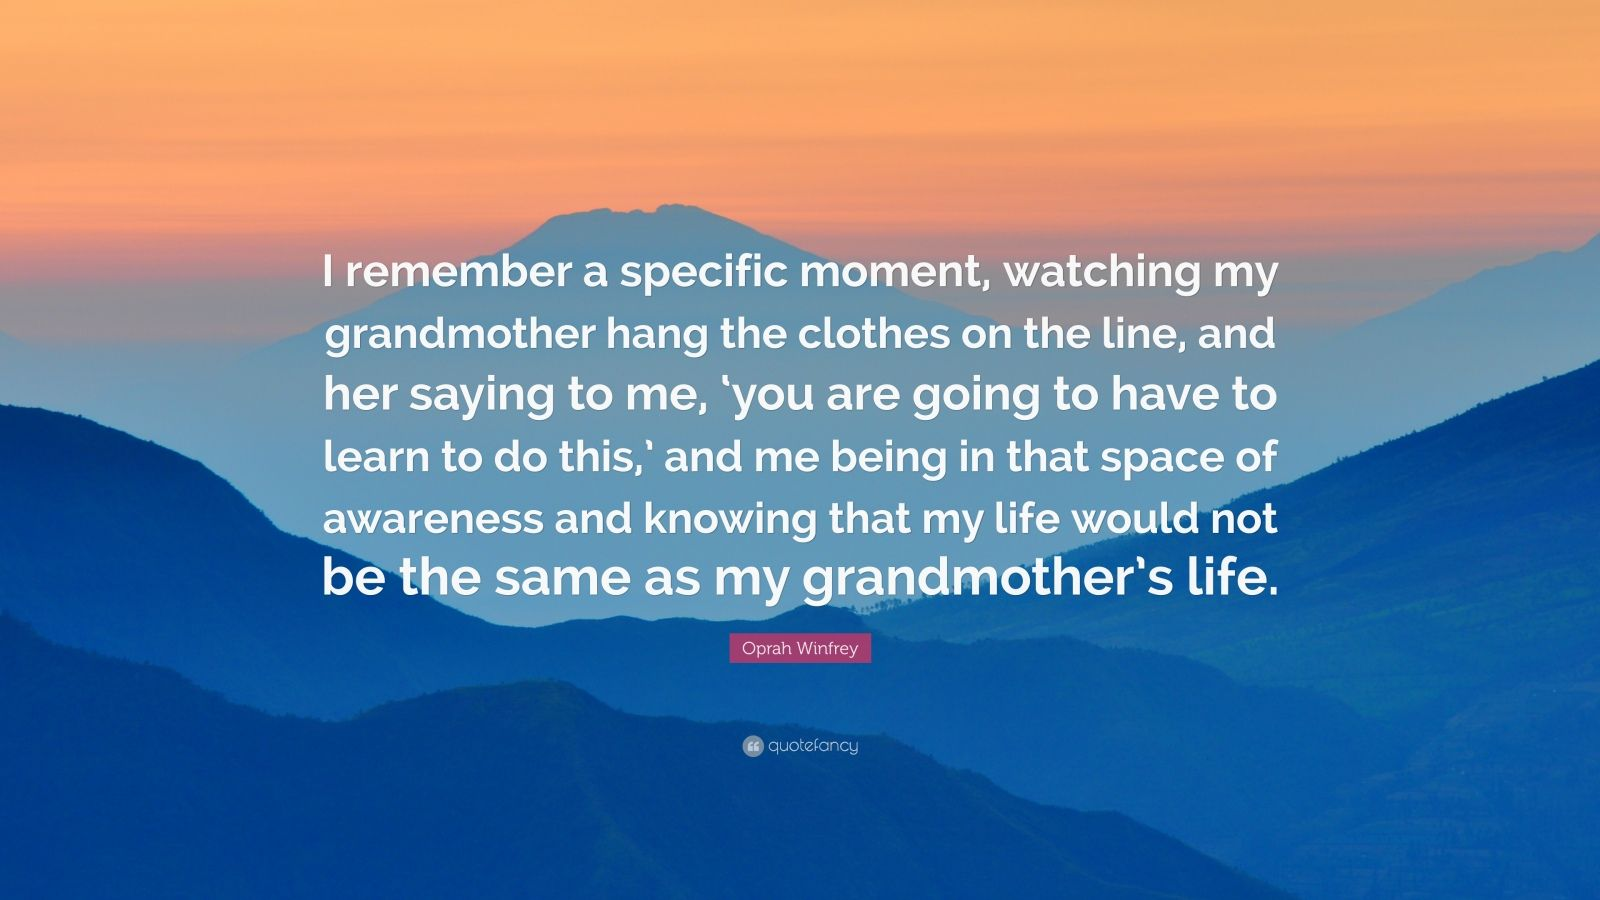 """Oprah Winfrey Quote: """"I remember a specific moment, watching my grandmother hang the clothes on the line, and her saying to me, 'you are going to have to learn to do this,' and me being in that space of awareness and knowing that my life would not be the same as my grandmother's life."""""""